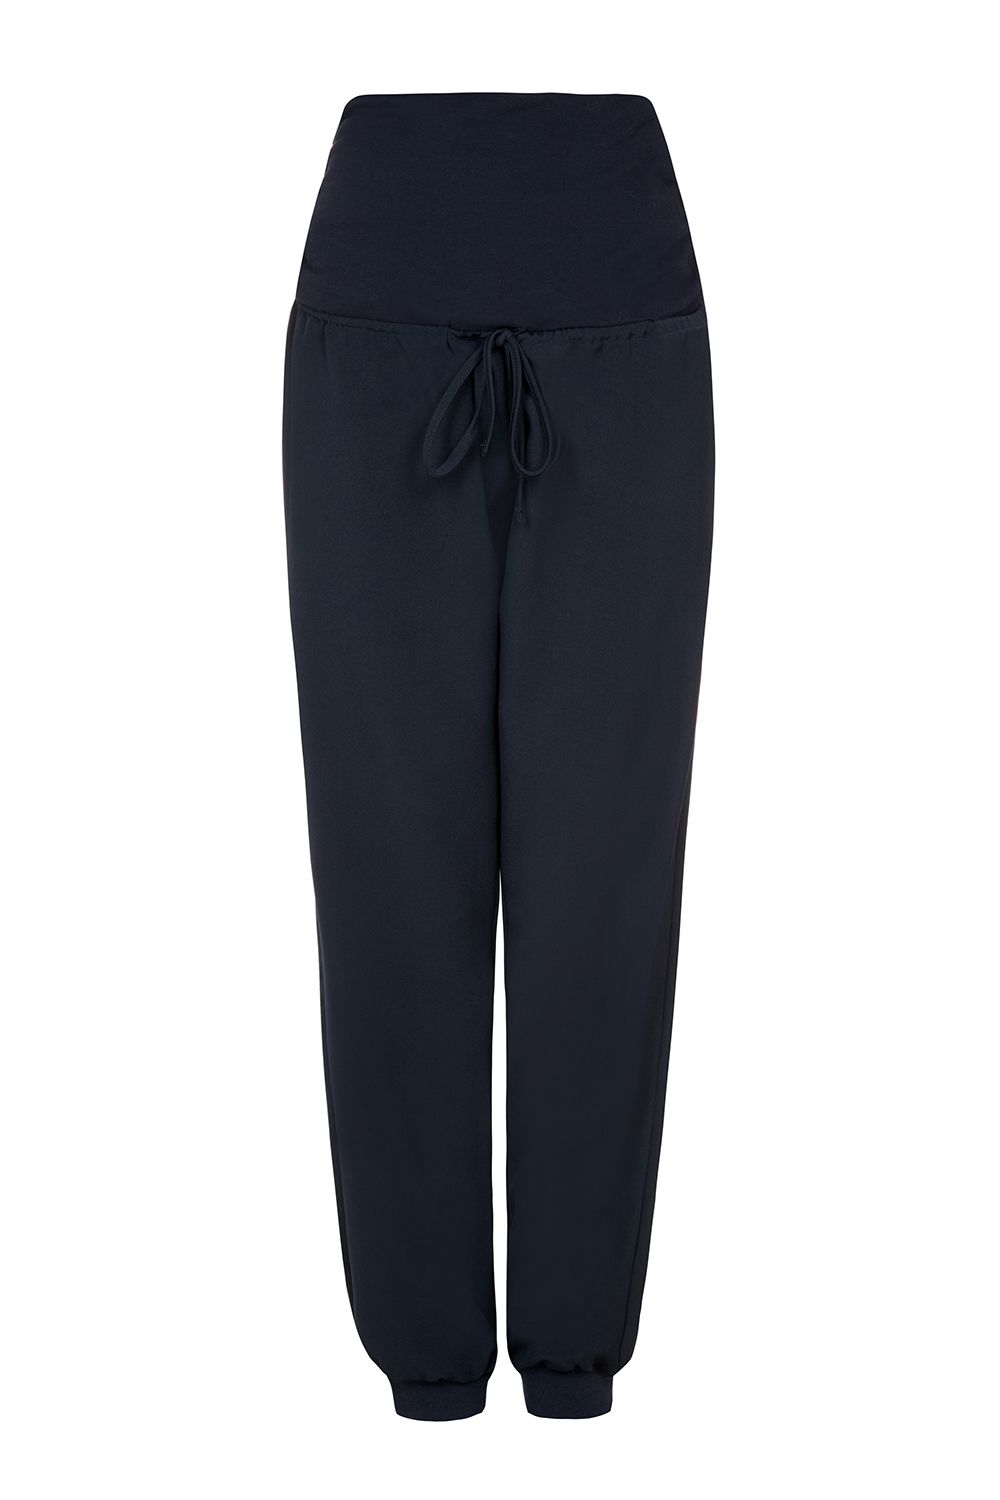 Bibee Maternity Jogging Trousers, Navy